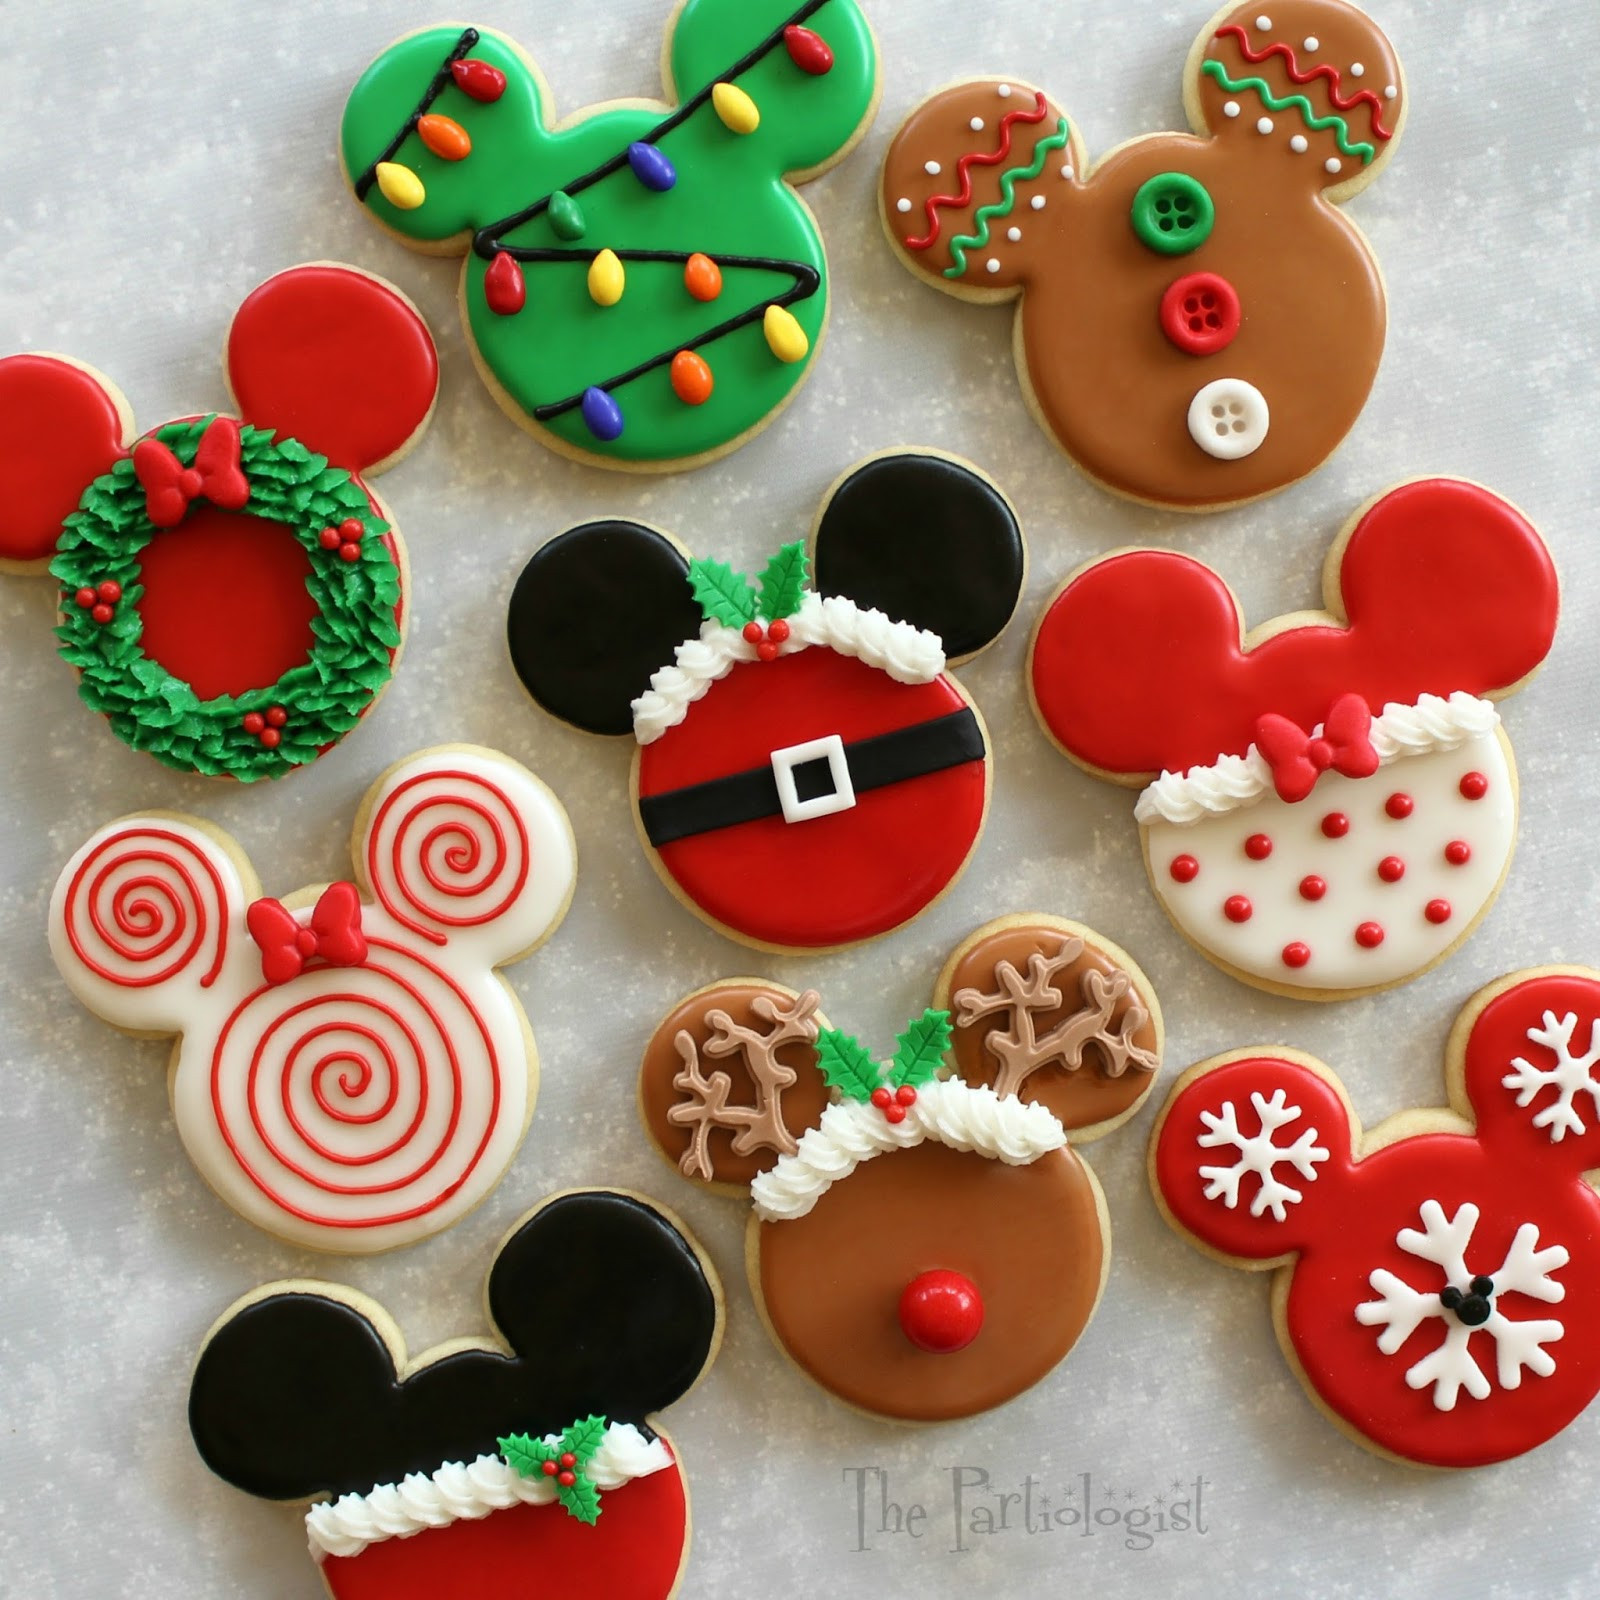 Christmas Cookies Decorating Ideas  The Partiologist Disney Themed Christmas Cookies